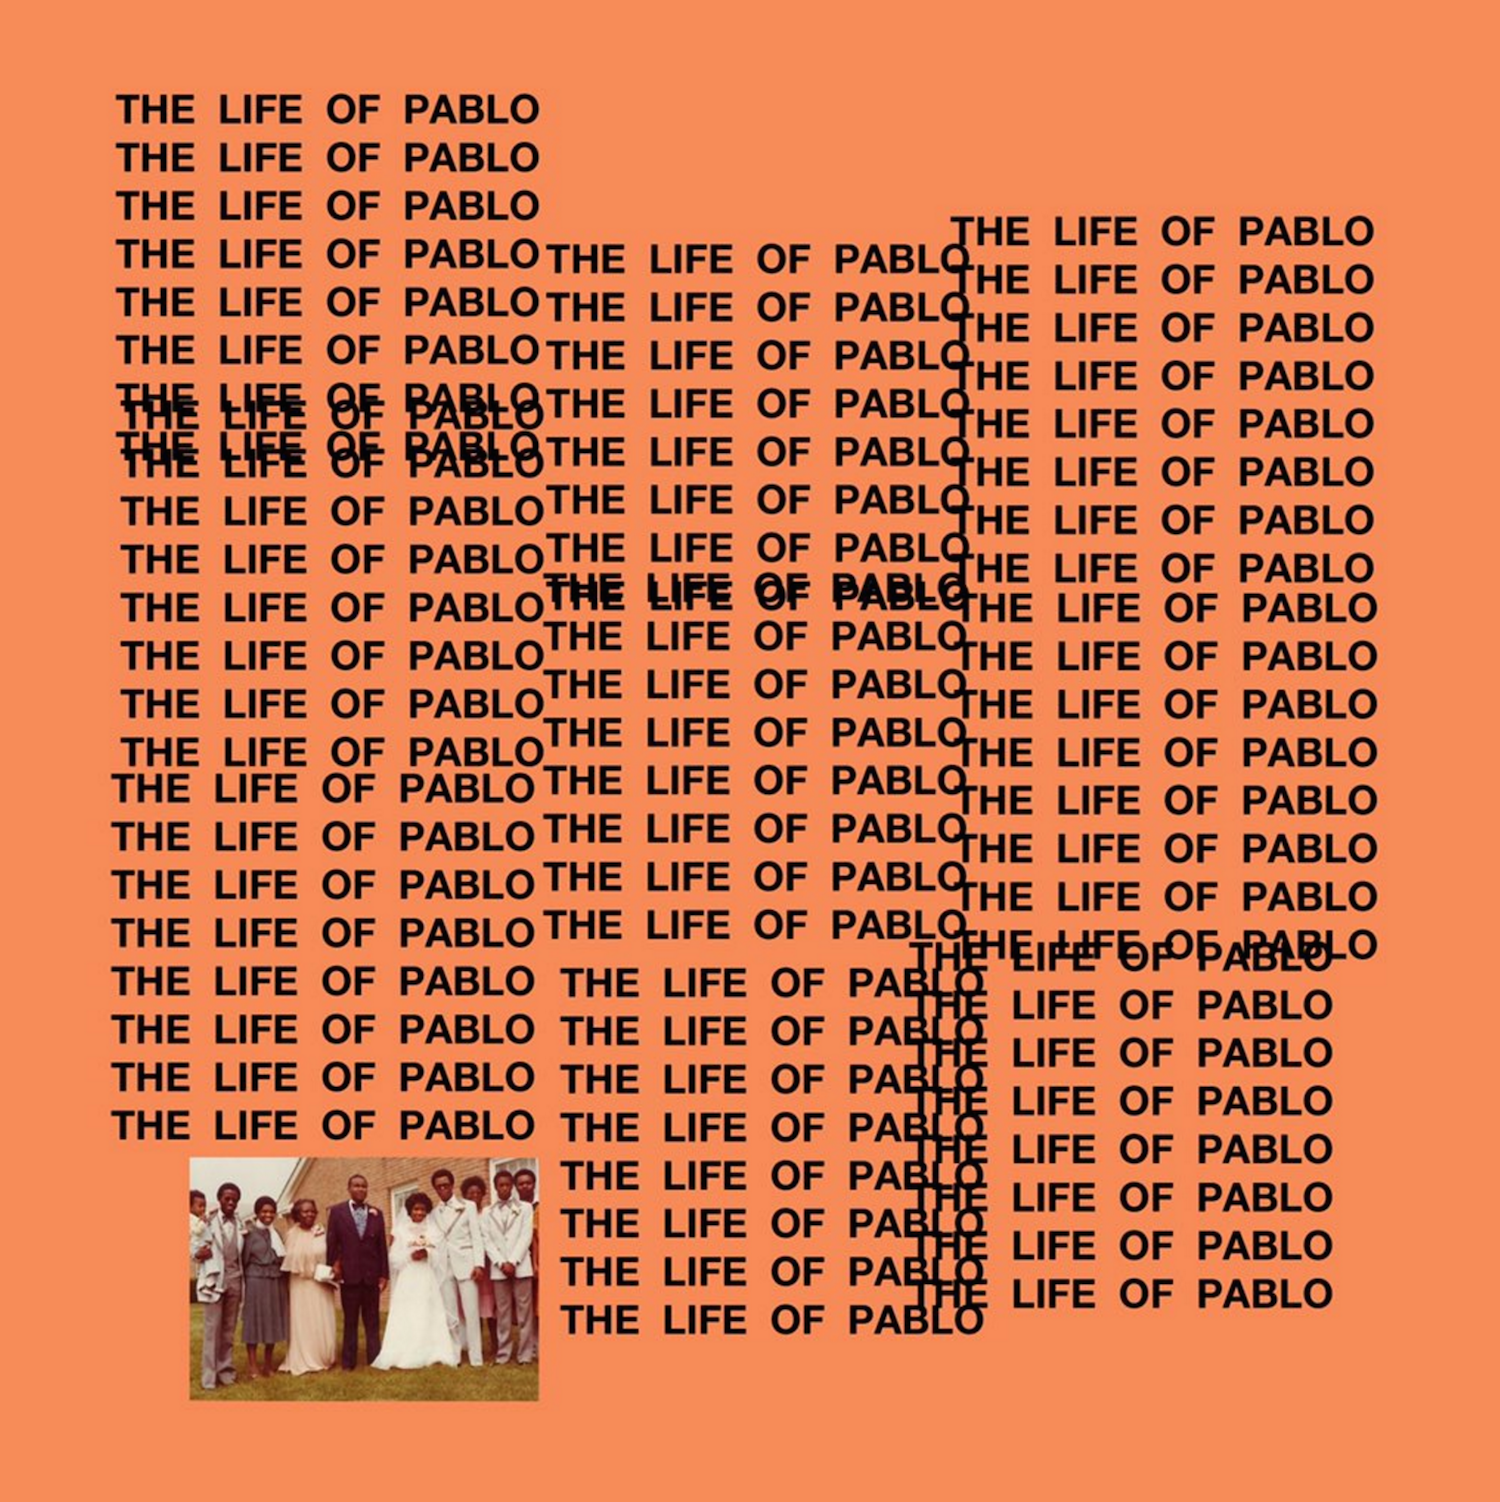 How to download kanye west's new album the life of pablo | heavy. Com.